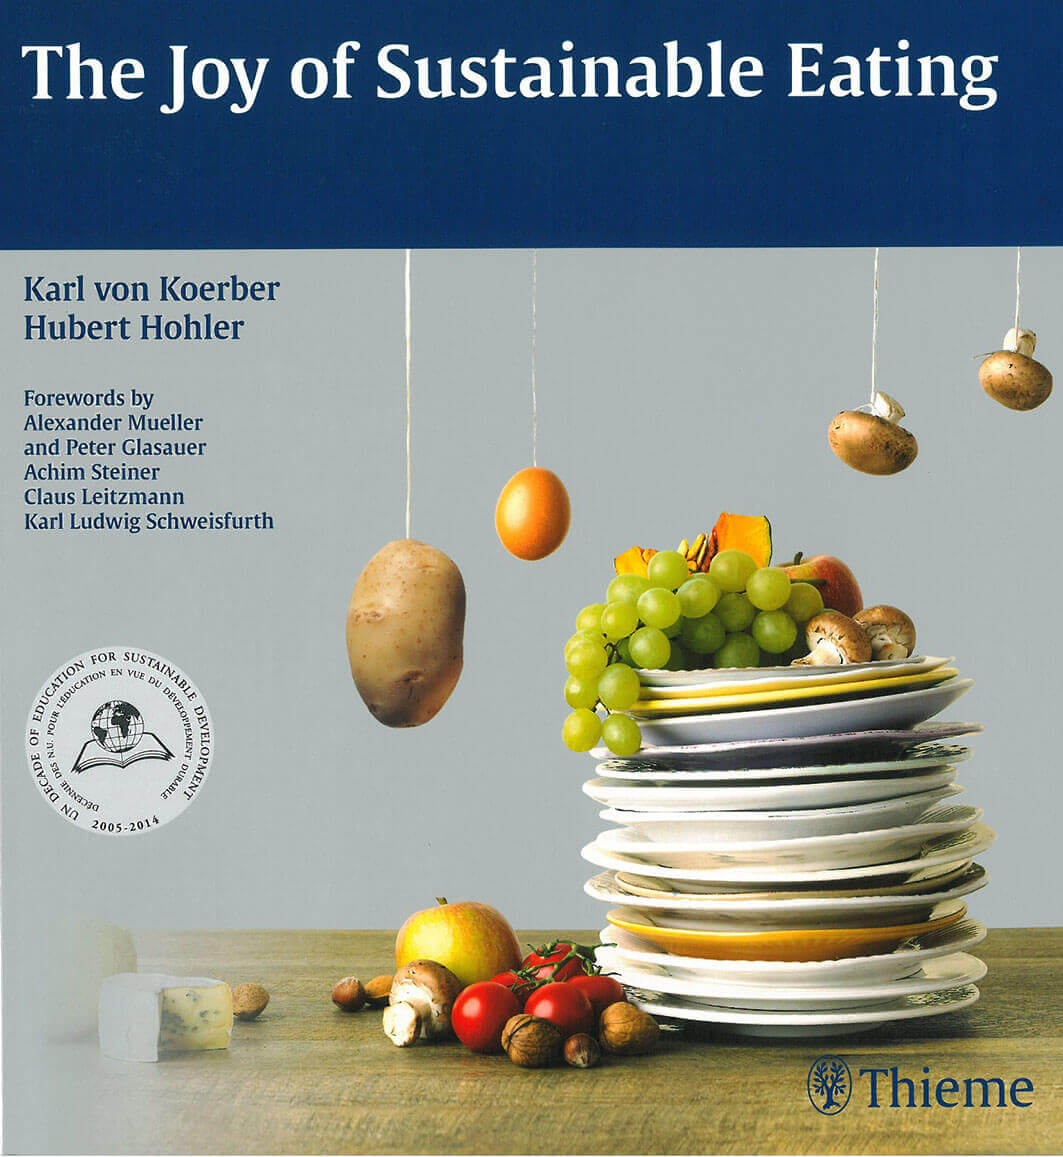 Buchinger Wilhelmi, Fasten, Heilfasten, Fasting, Health, Integrative Medicine, The Joy of Sustainable Eating, Hubert Hohler, Karl von Koerber, Thieme, Science, Wissenschaft